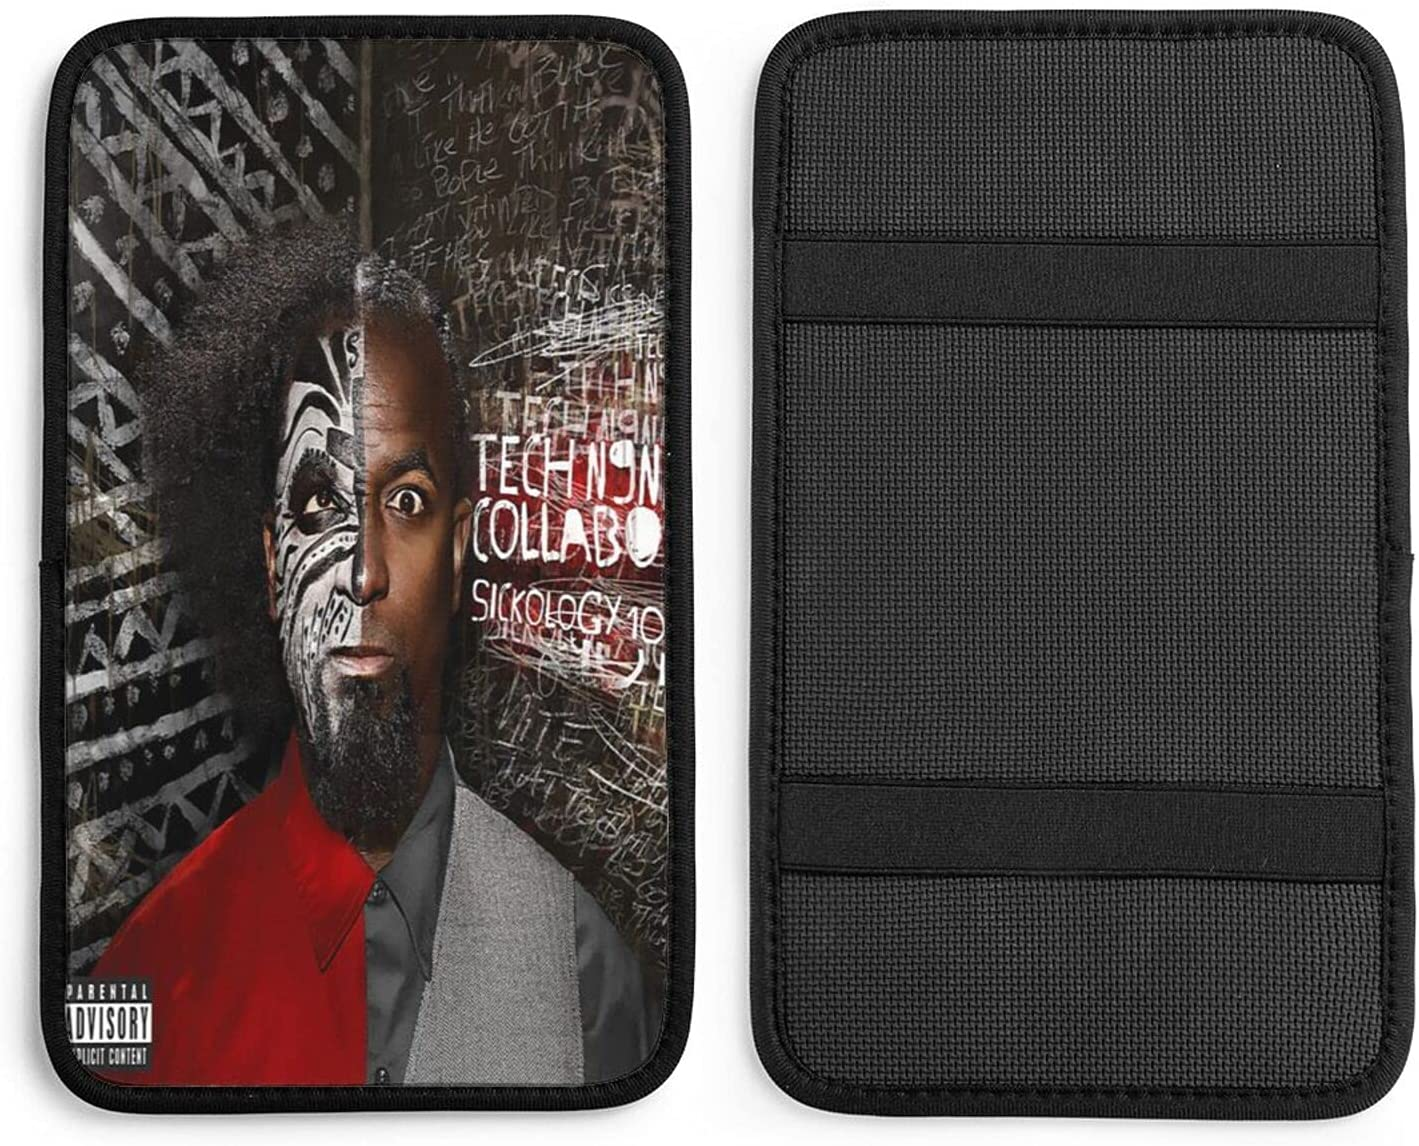 Tech N9ne Car Armrest At the price Cover Auto Pad Console Center Max 79% OFF Soft Comfort